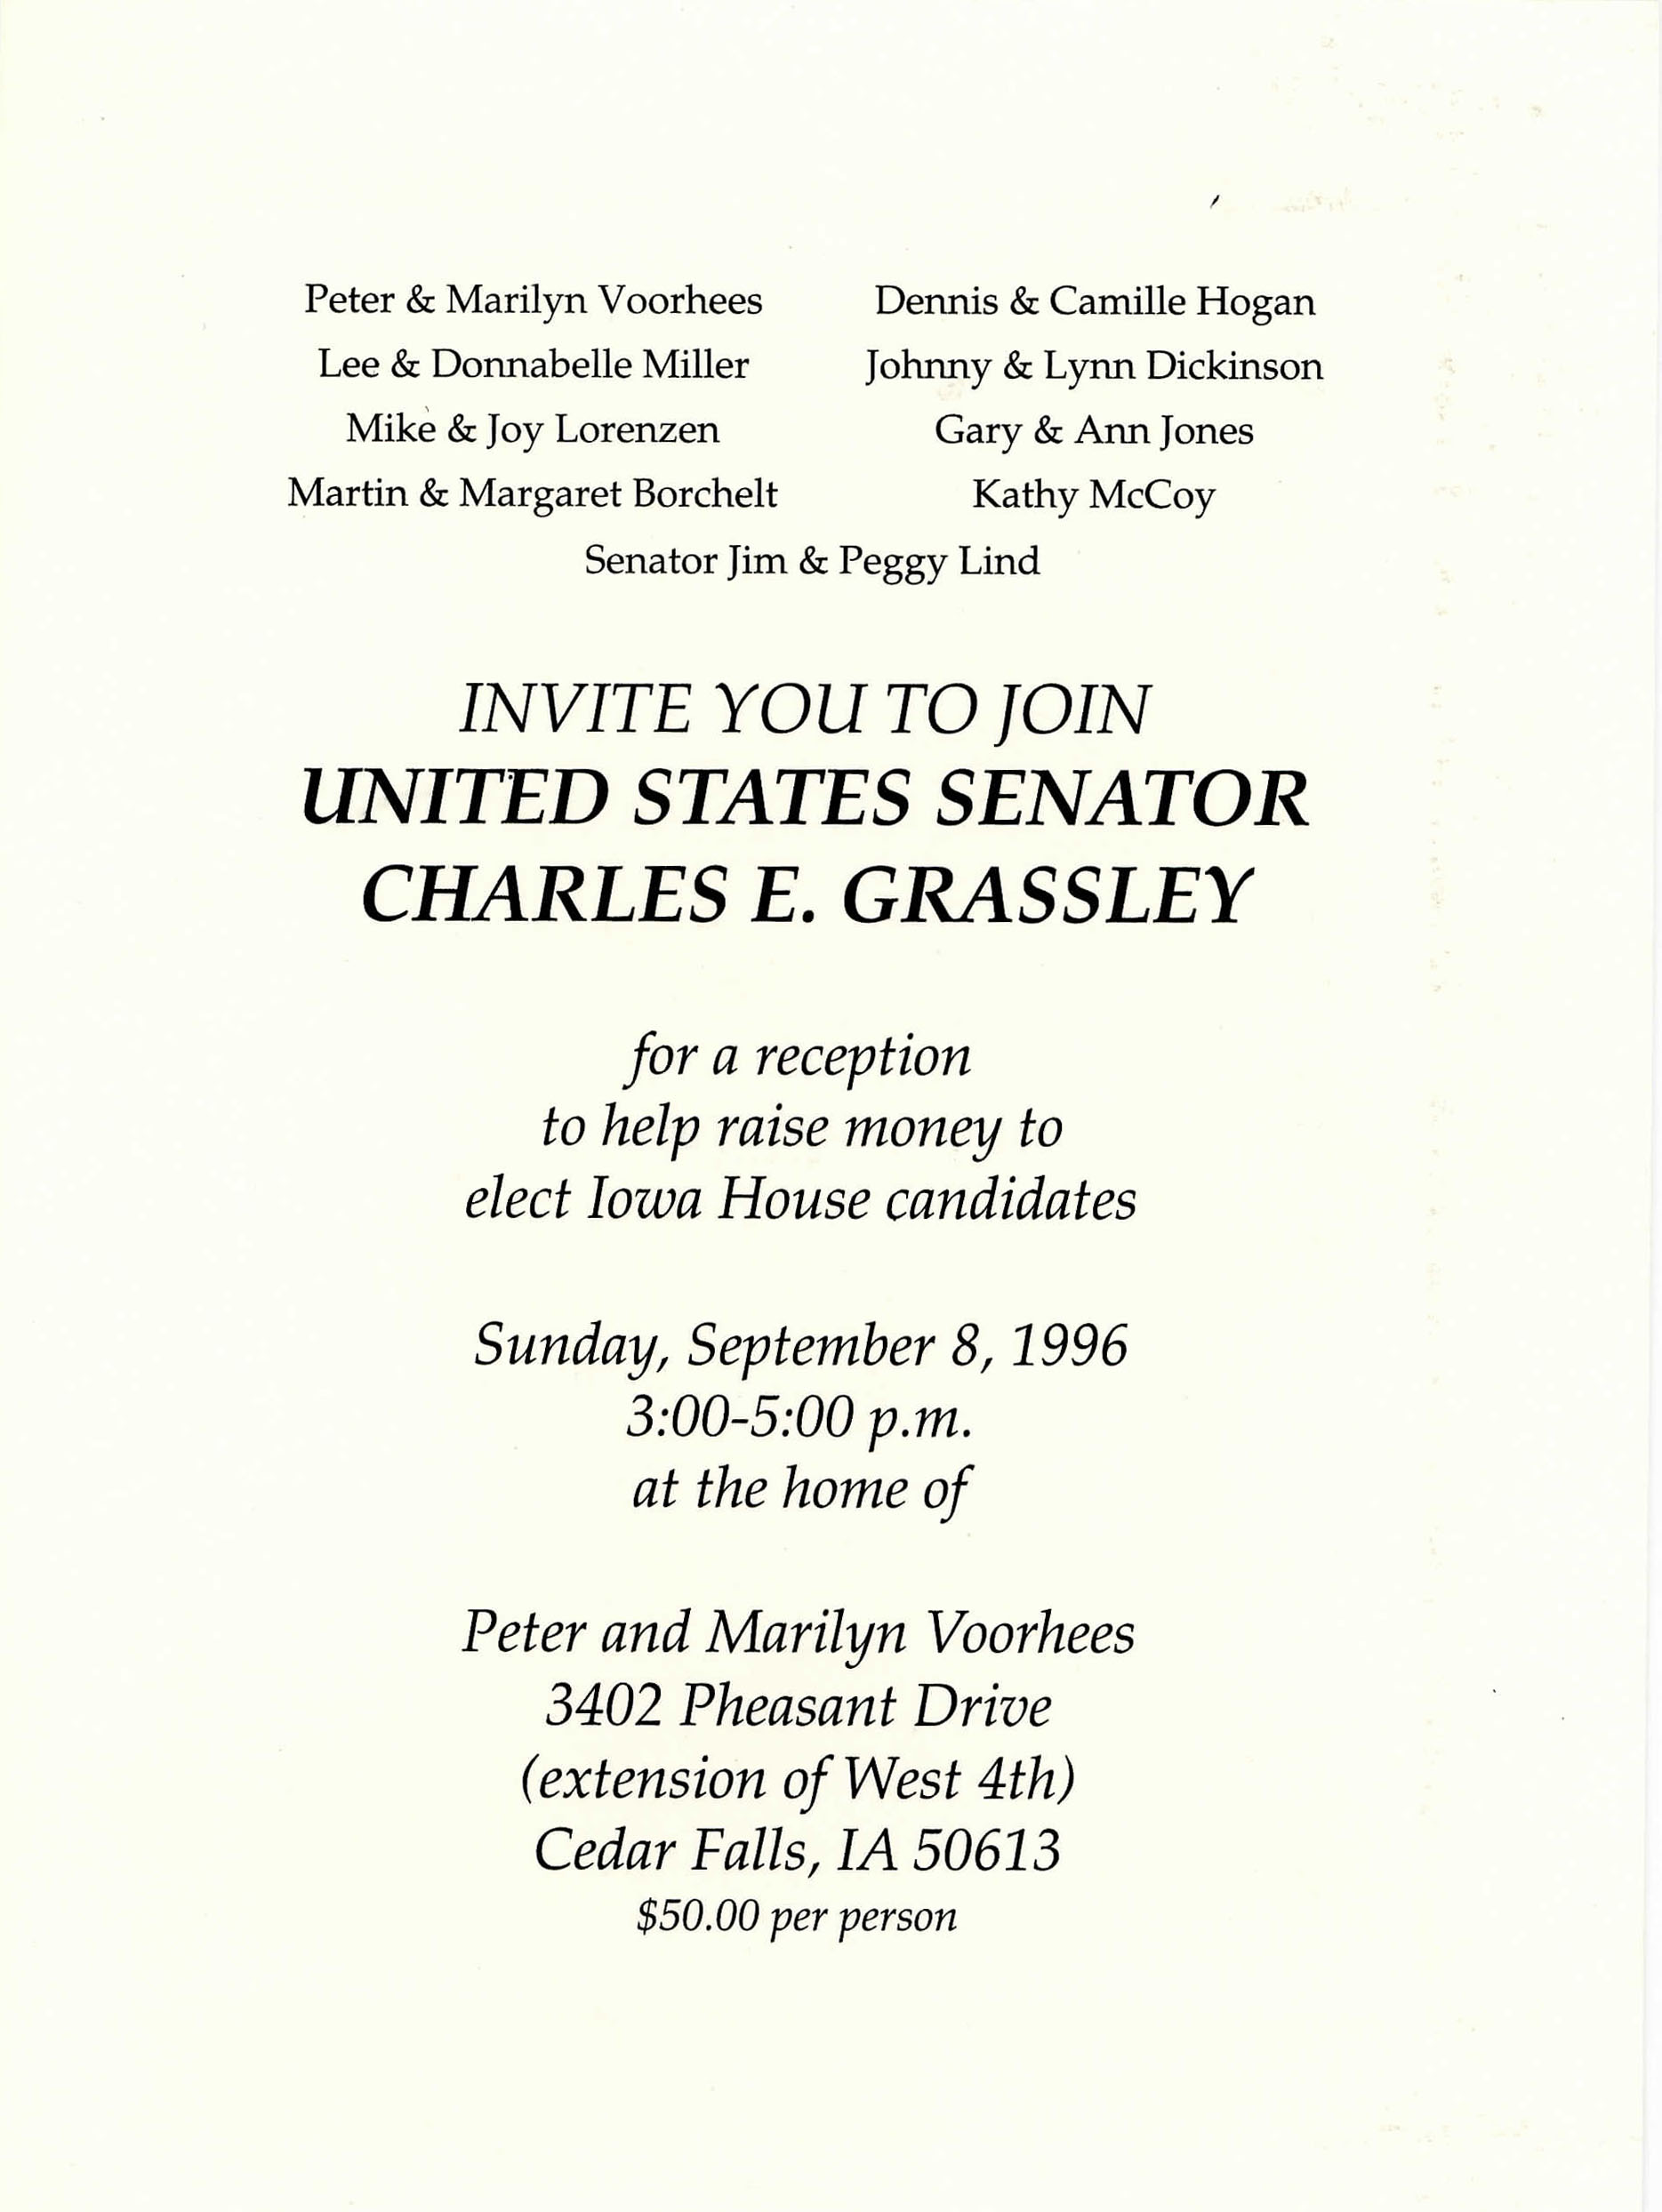 Image of an invitation.